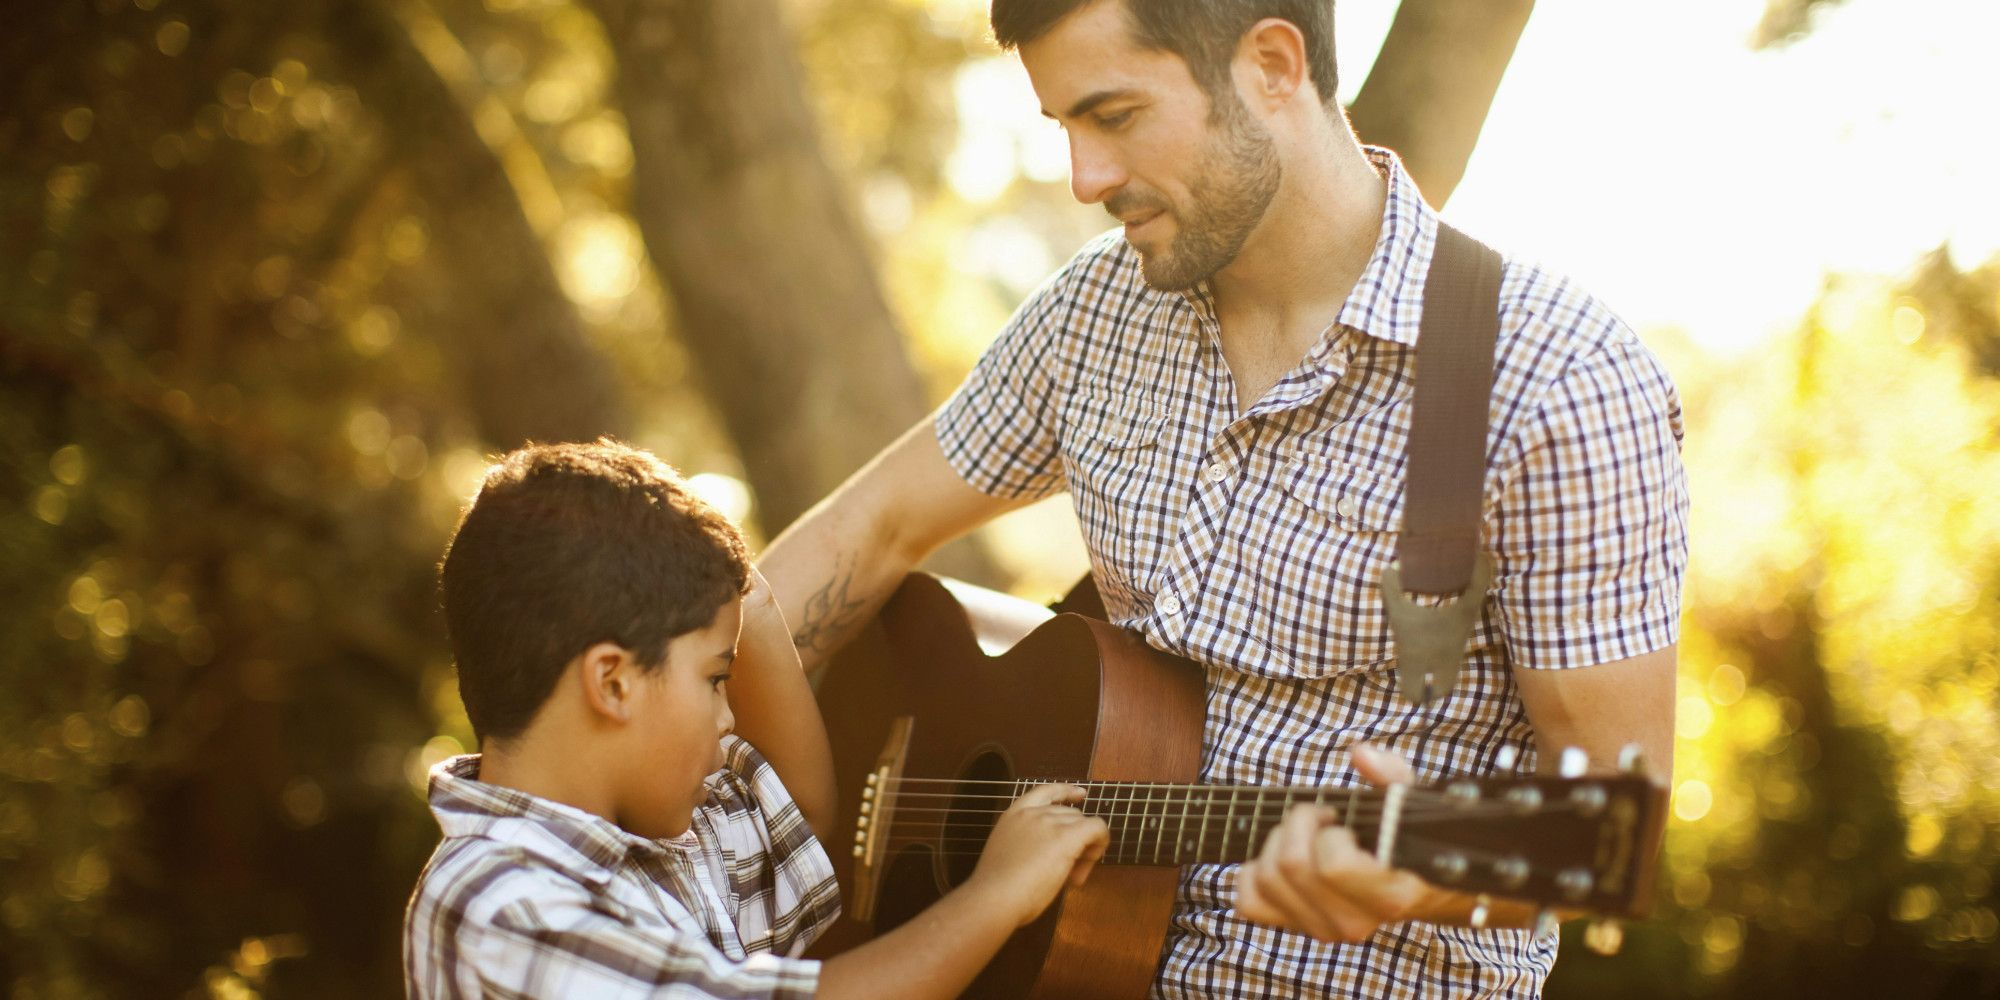 This image represents my past play. The play personality for this image is Explorer. The boy is obviously seeking a new experience by reaching out to touch the guitar. The qualities of play would be Voluntary and Inherent Attraction. The child wants to discover because he is mesmerized by the sounds the guitar is making while his father plays.